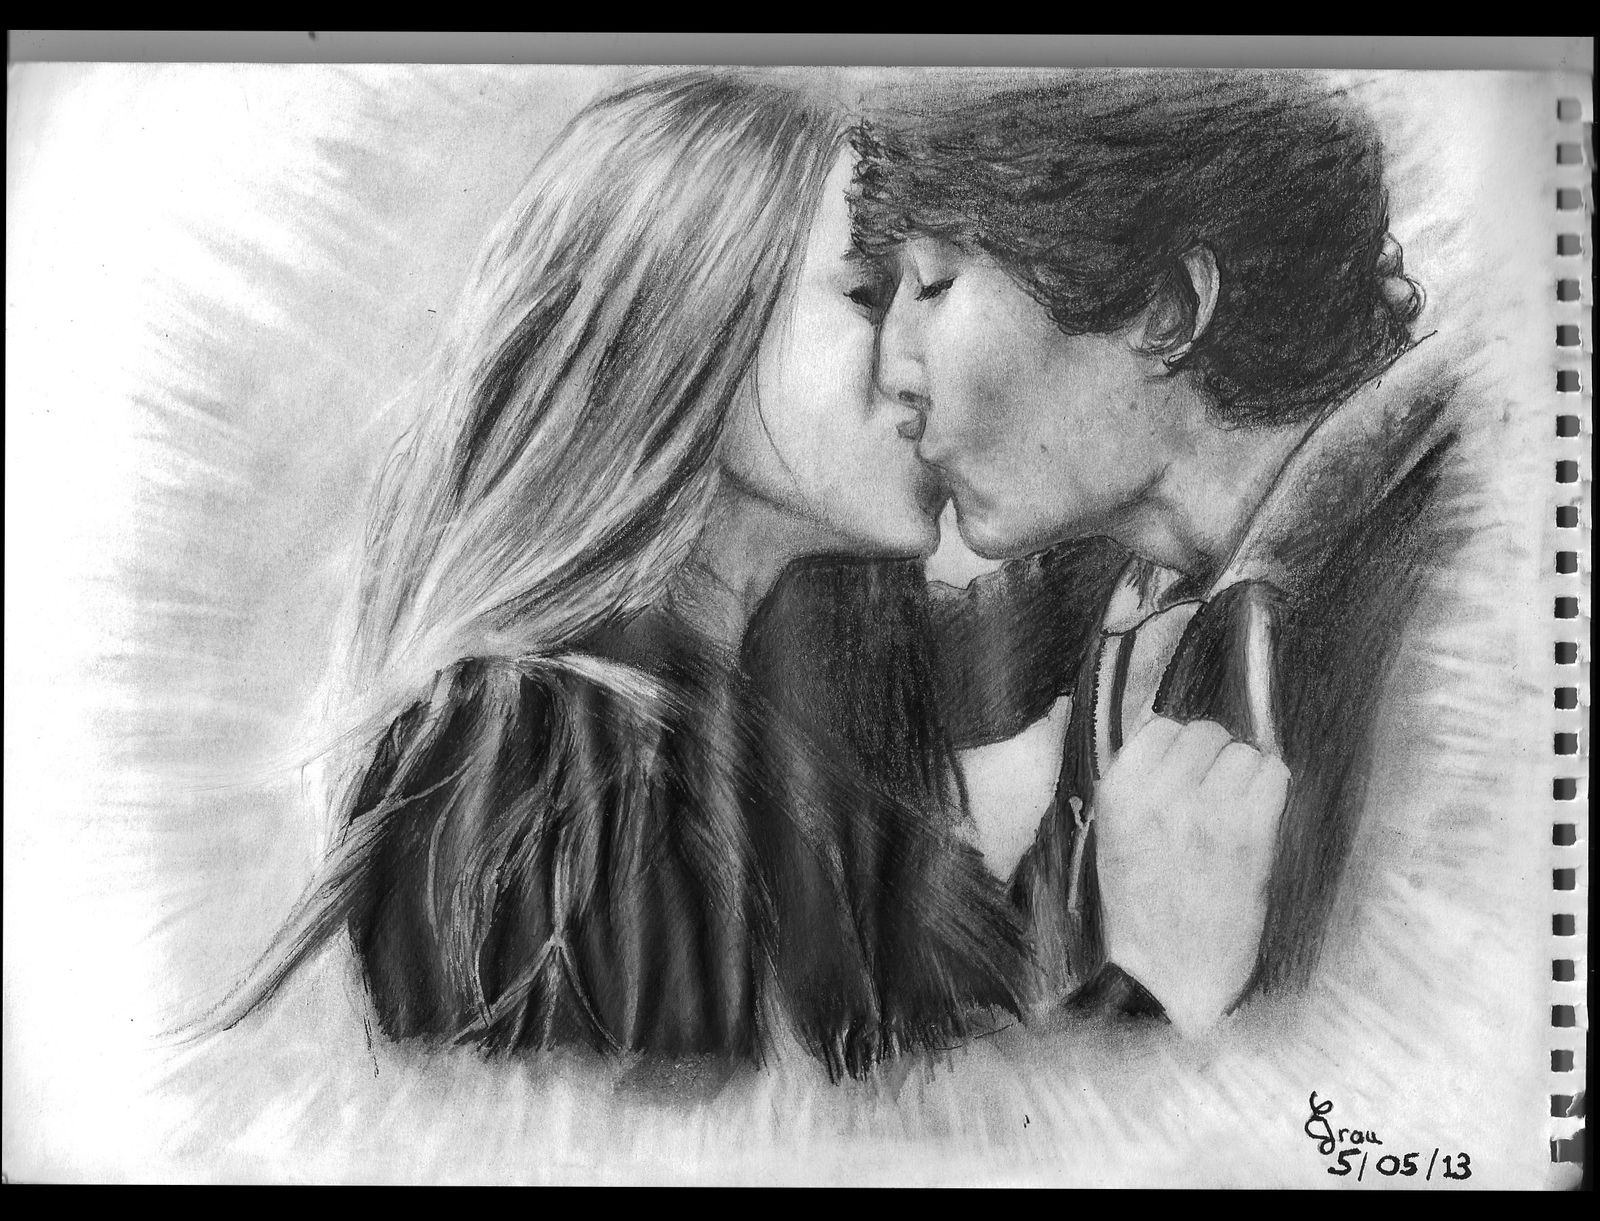 Dessins portraits jeune couple elenacreations - Dessin amoureux couple ...